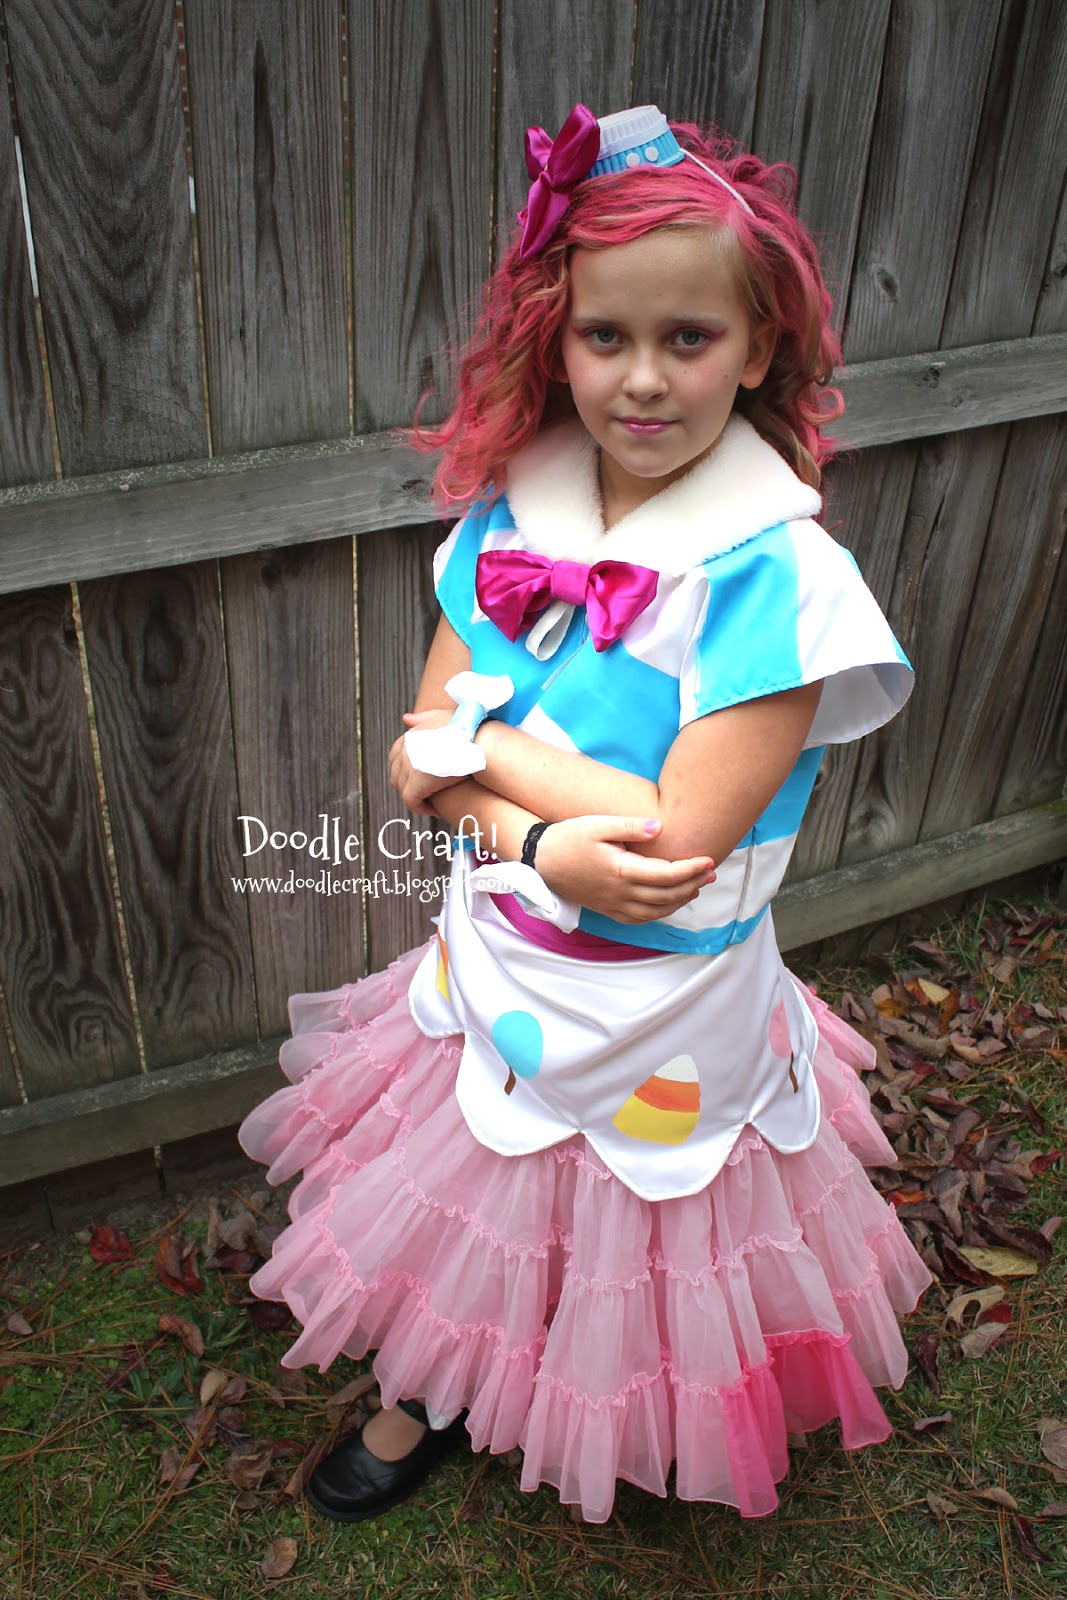 My Little Pony Pinkie Pie Gala Cosplay Dress!  sc 1 st  Doodlecraft & Doodlecraft: My Little Pony Pinkie Pie Gala Cosplay Dress!